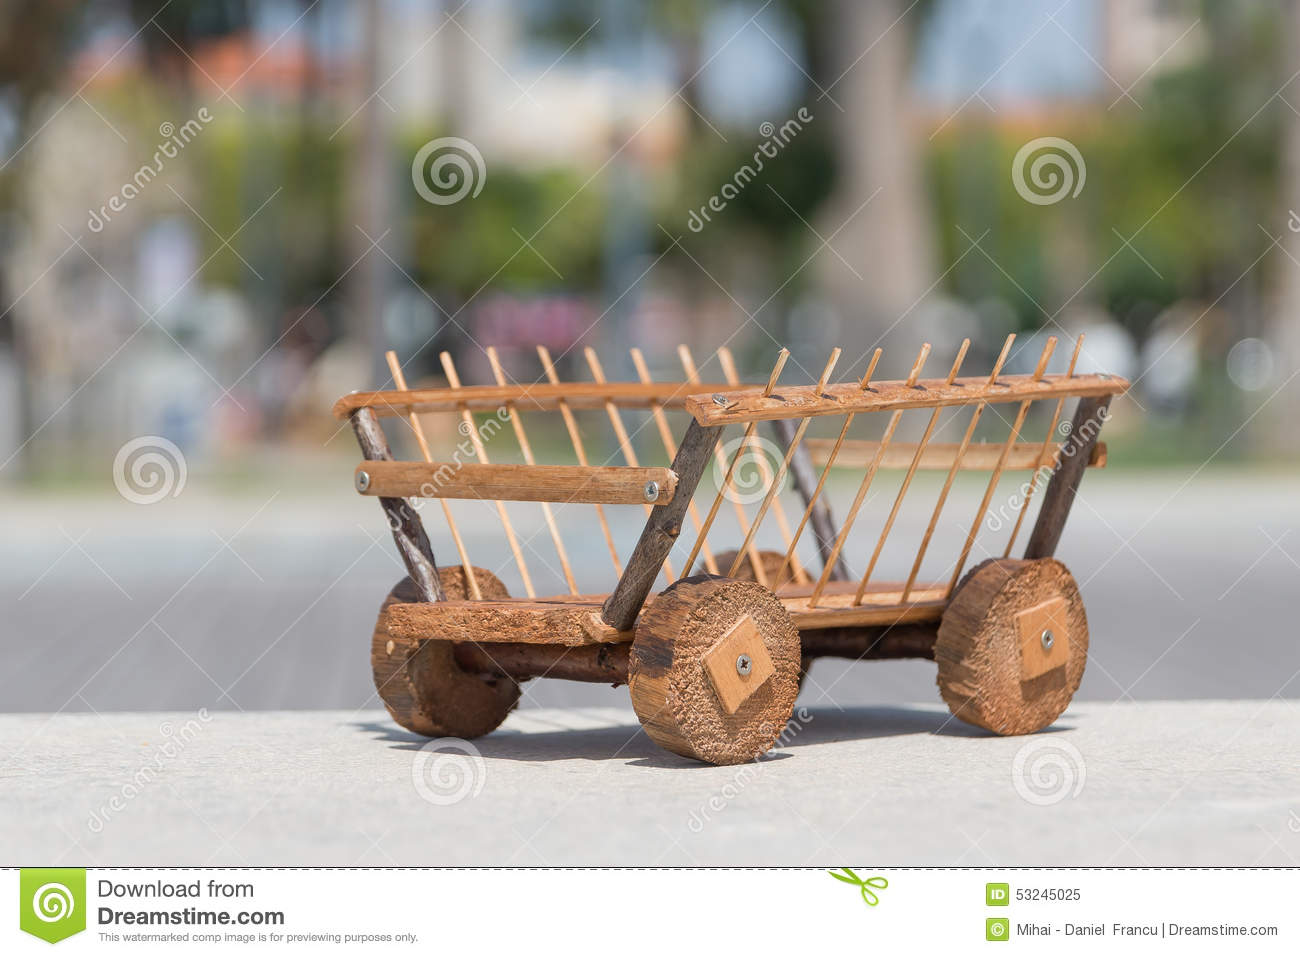 Cart Wood Stock Image. Image Of Things, Wood, Handmade